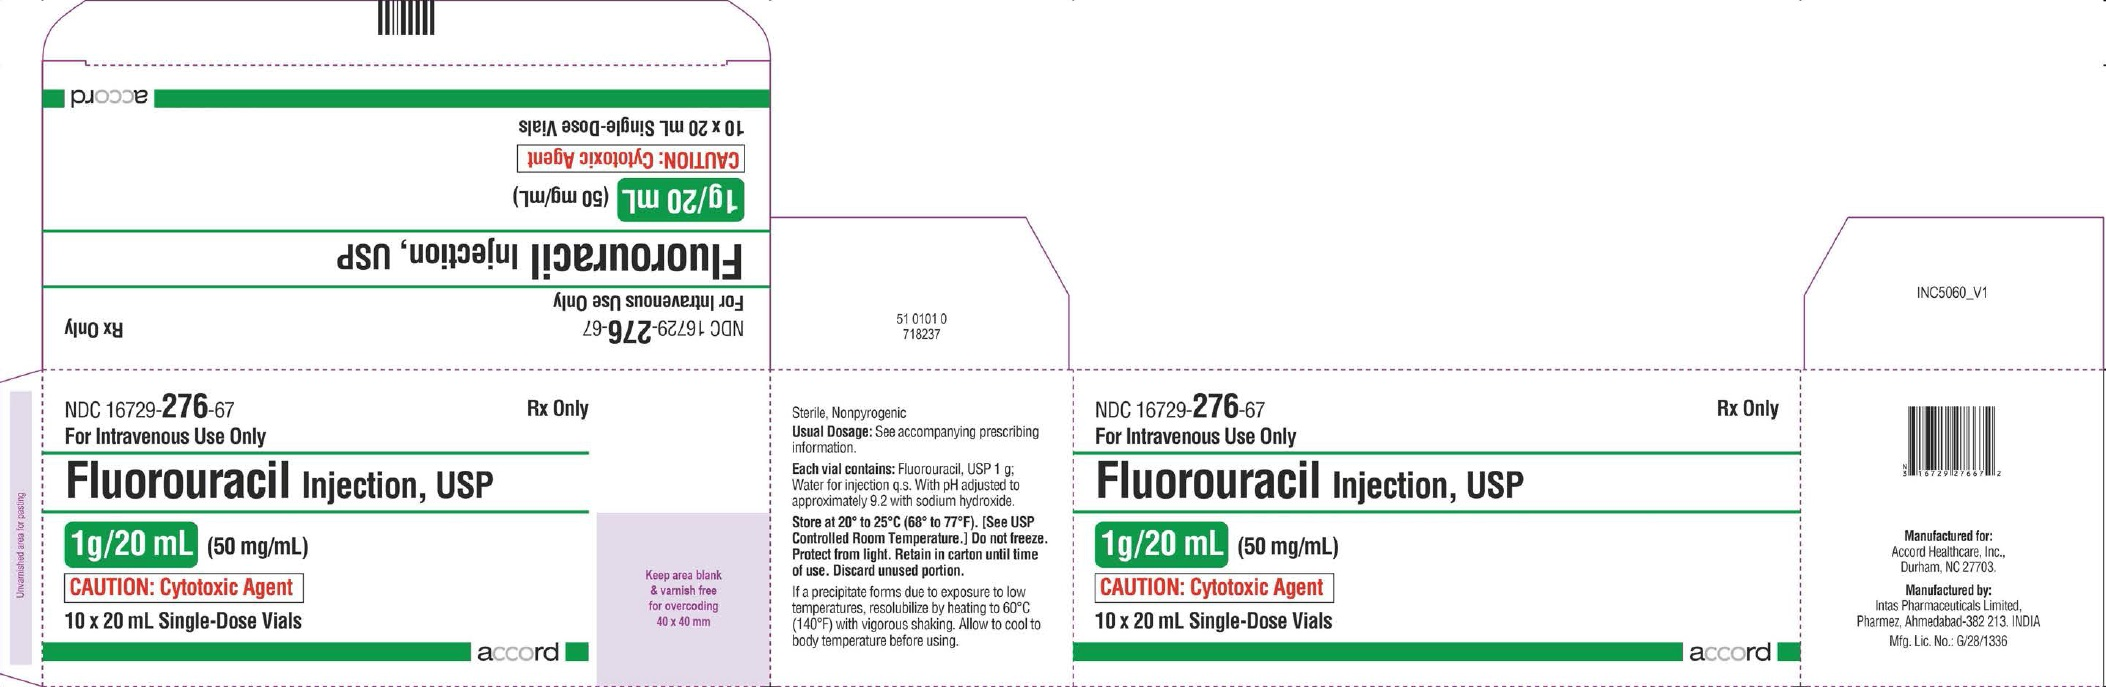 PRINCIPAL DISPLAY PANEL -1 g/20 mL Vial Carton